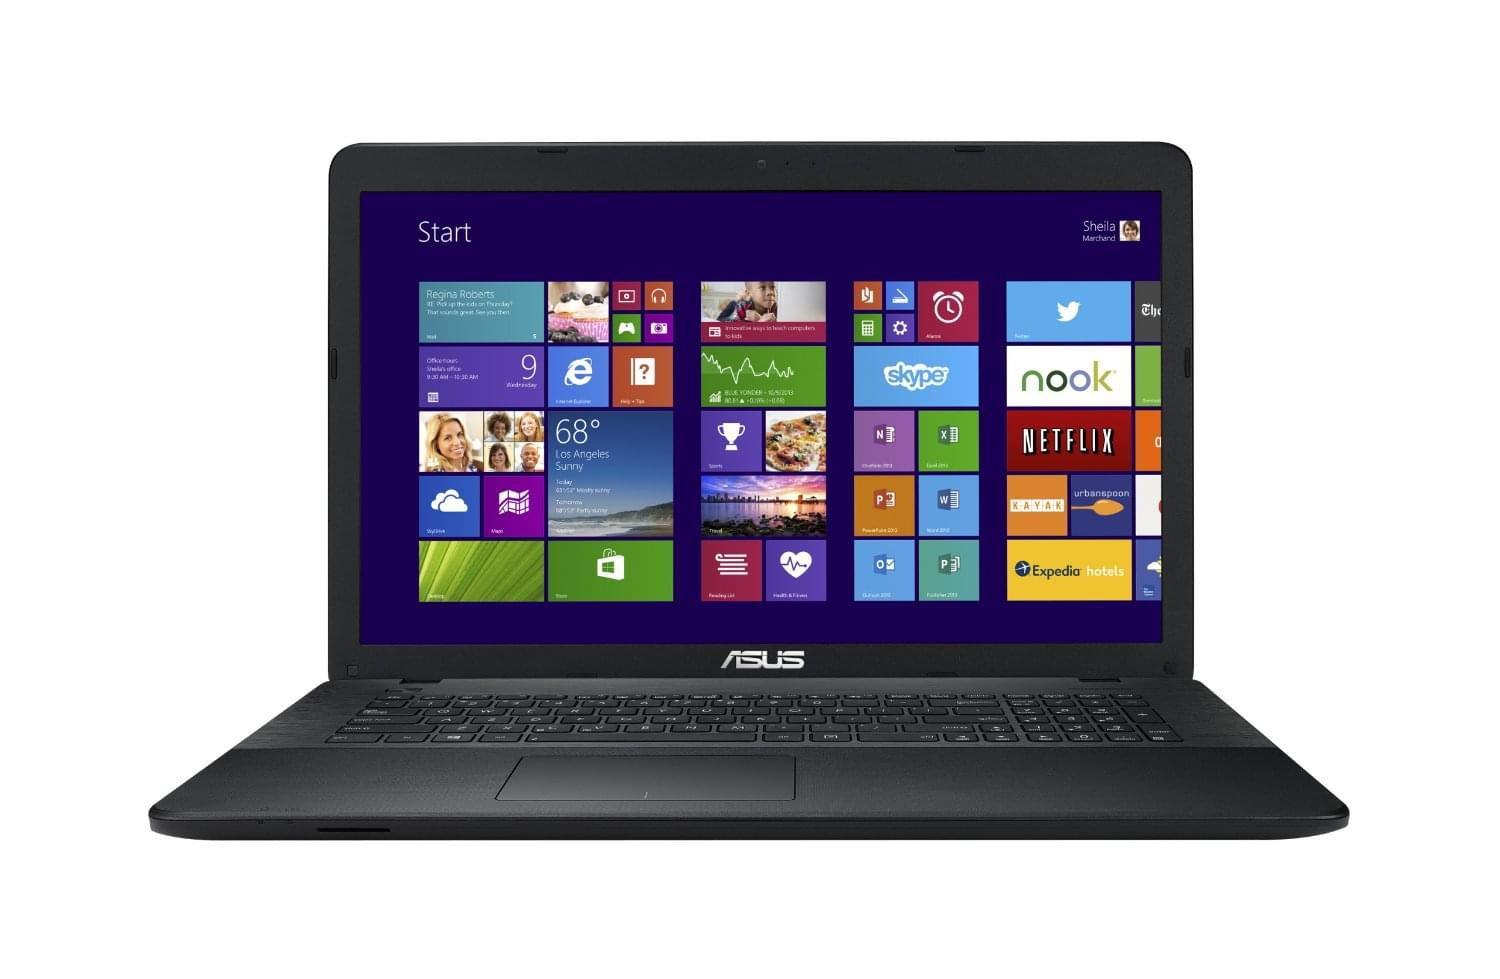 Asus X751MD-TY062H - PC portable Asus - Cybertek.fr - 0